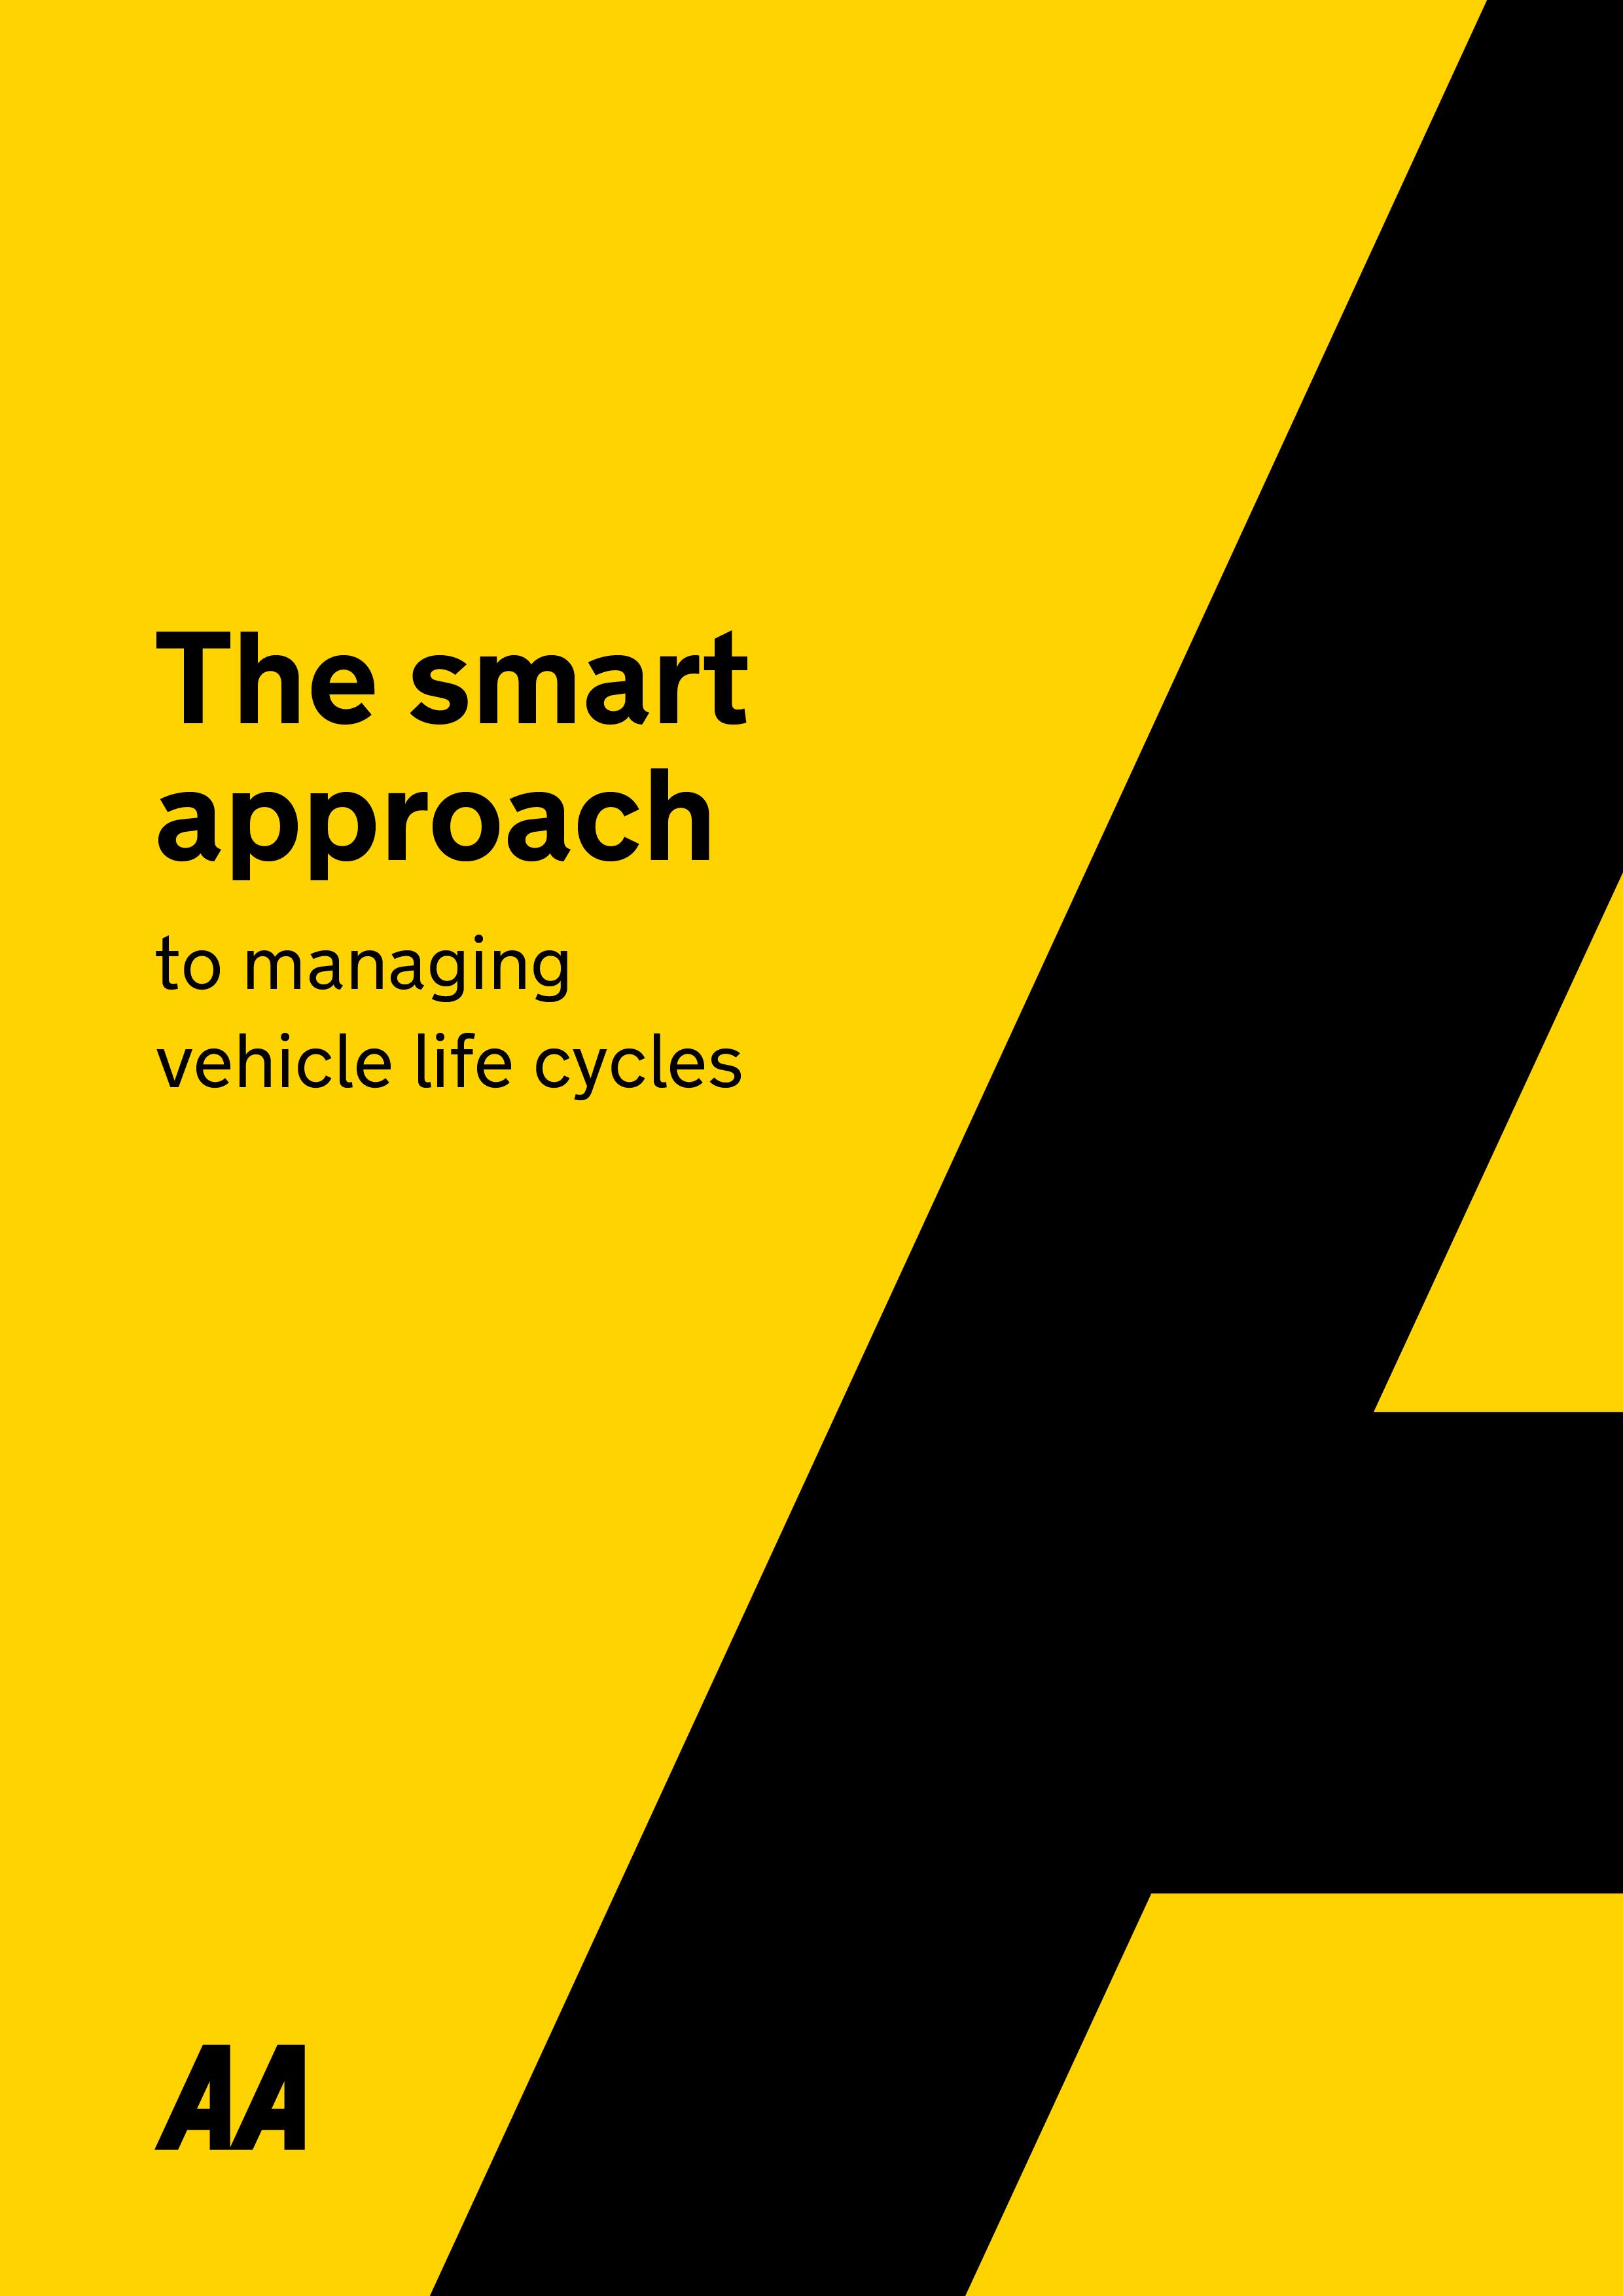 The aa fleet lifecycle white paper